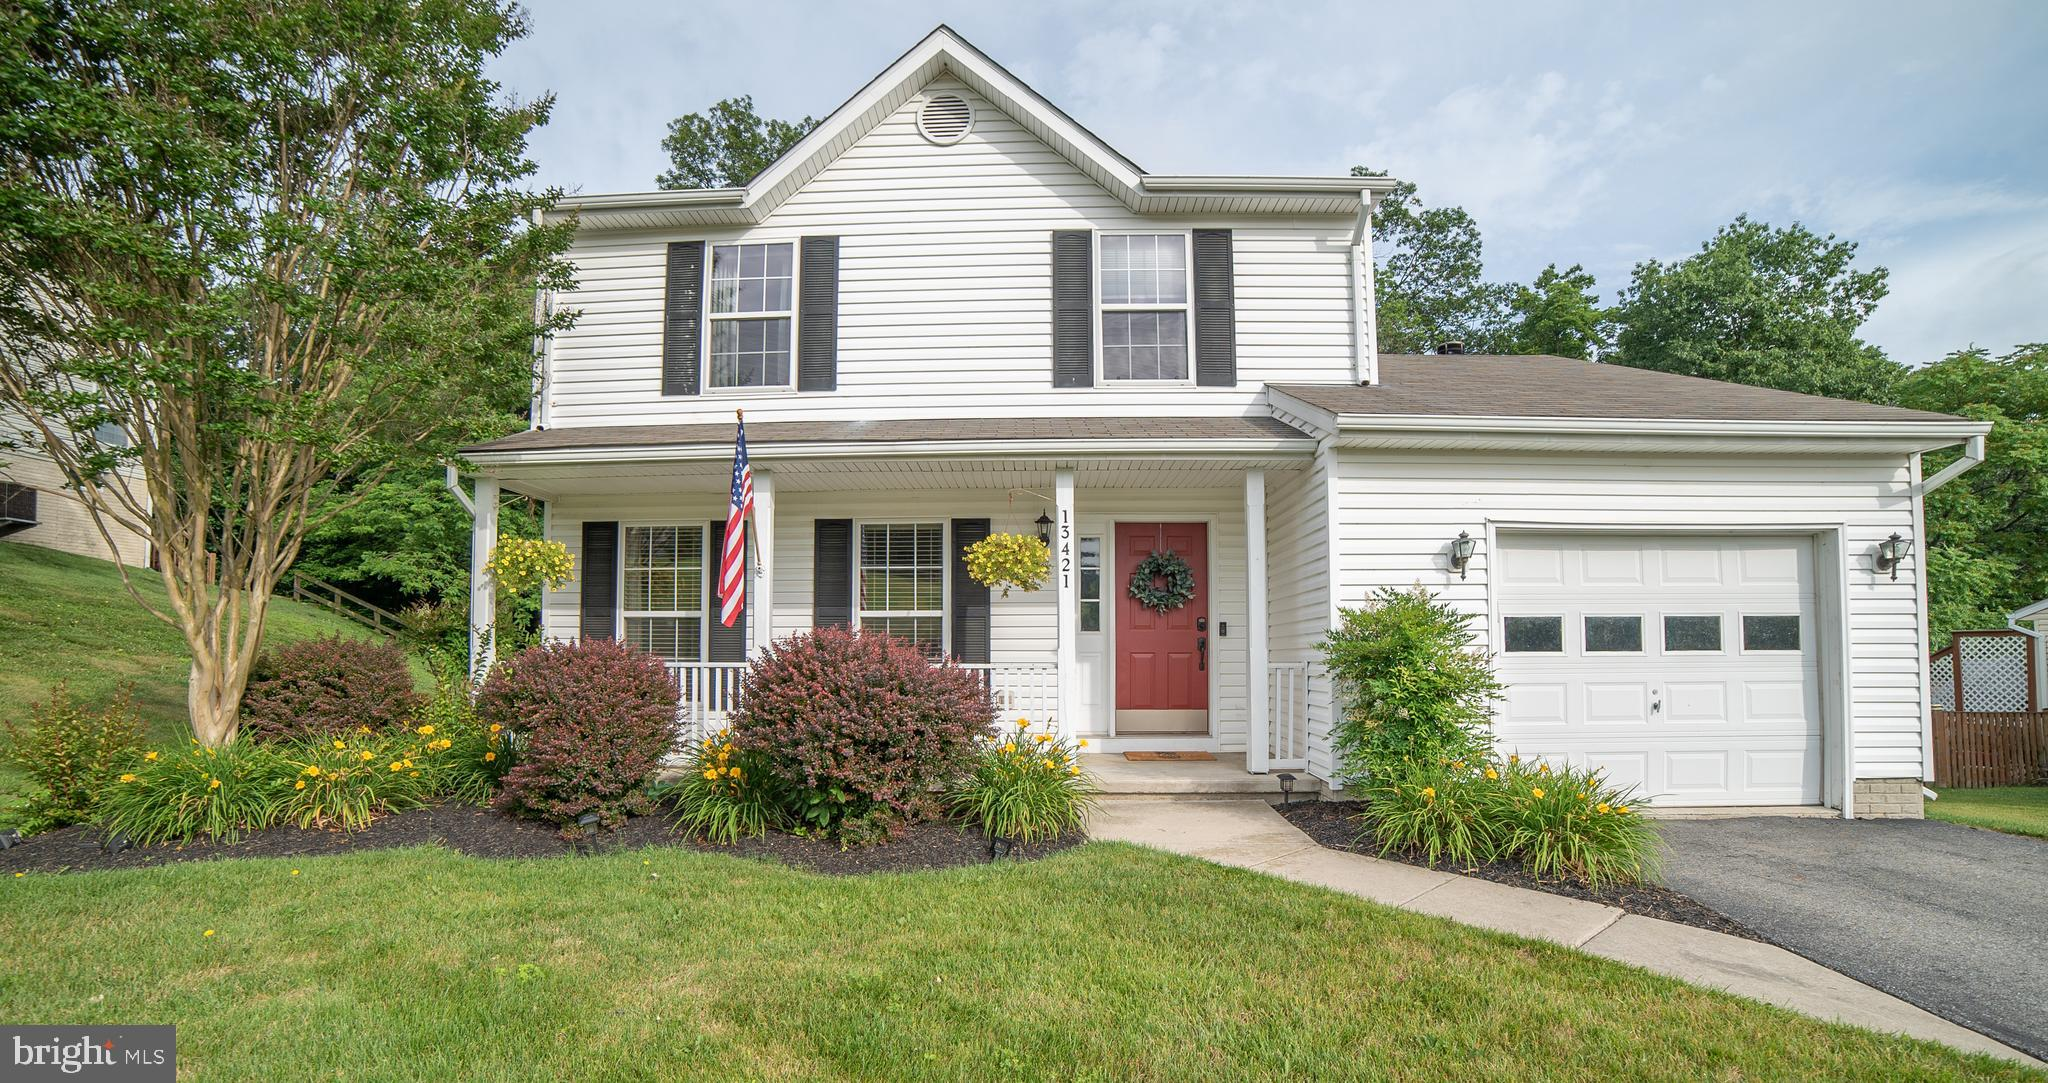 13421 AUTUMN CREST DRIVE, MOUNT AIRY, MD 21771